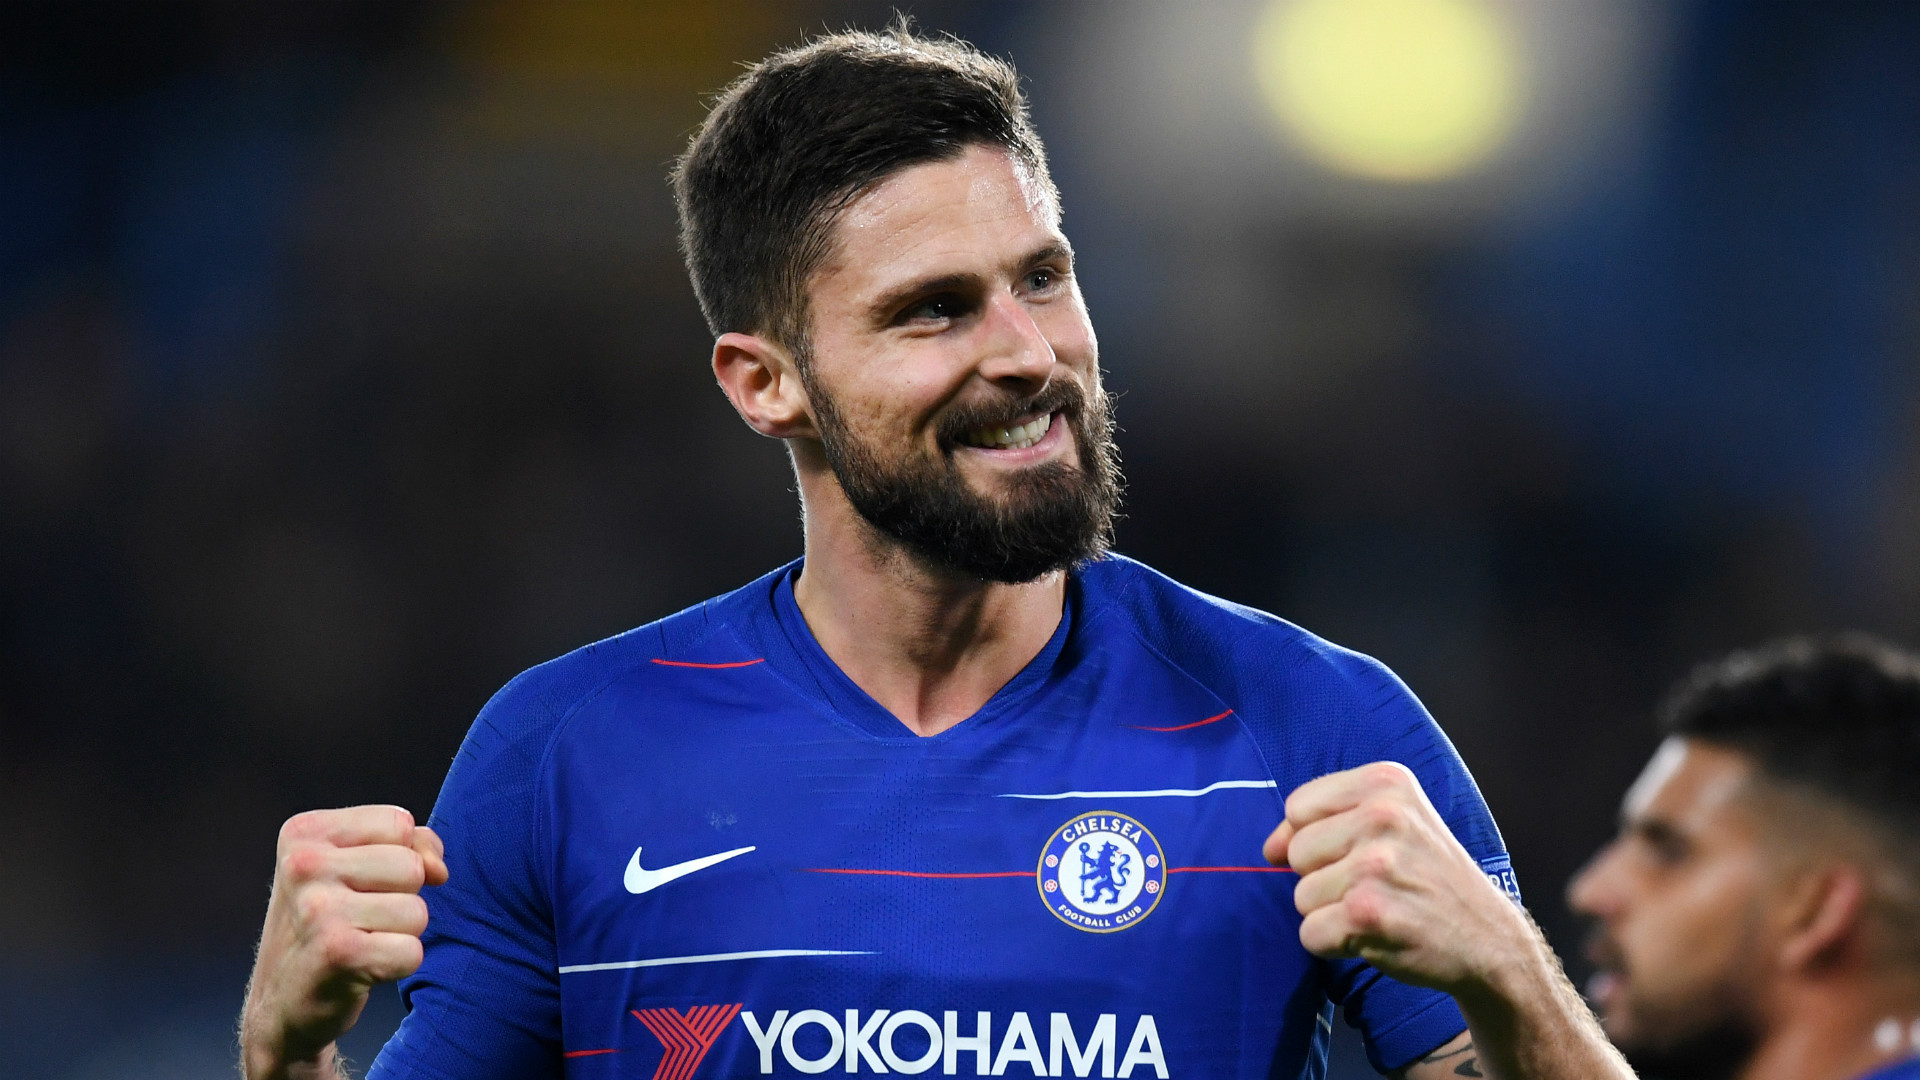 'My blood is blue now' - Giroud won't hold back against Arsenal in the Europa League - Bóng Đá